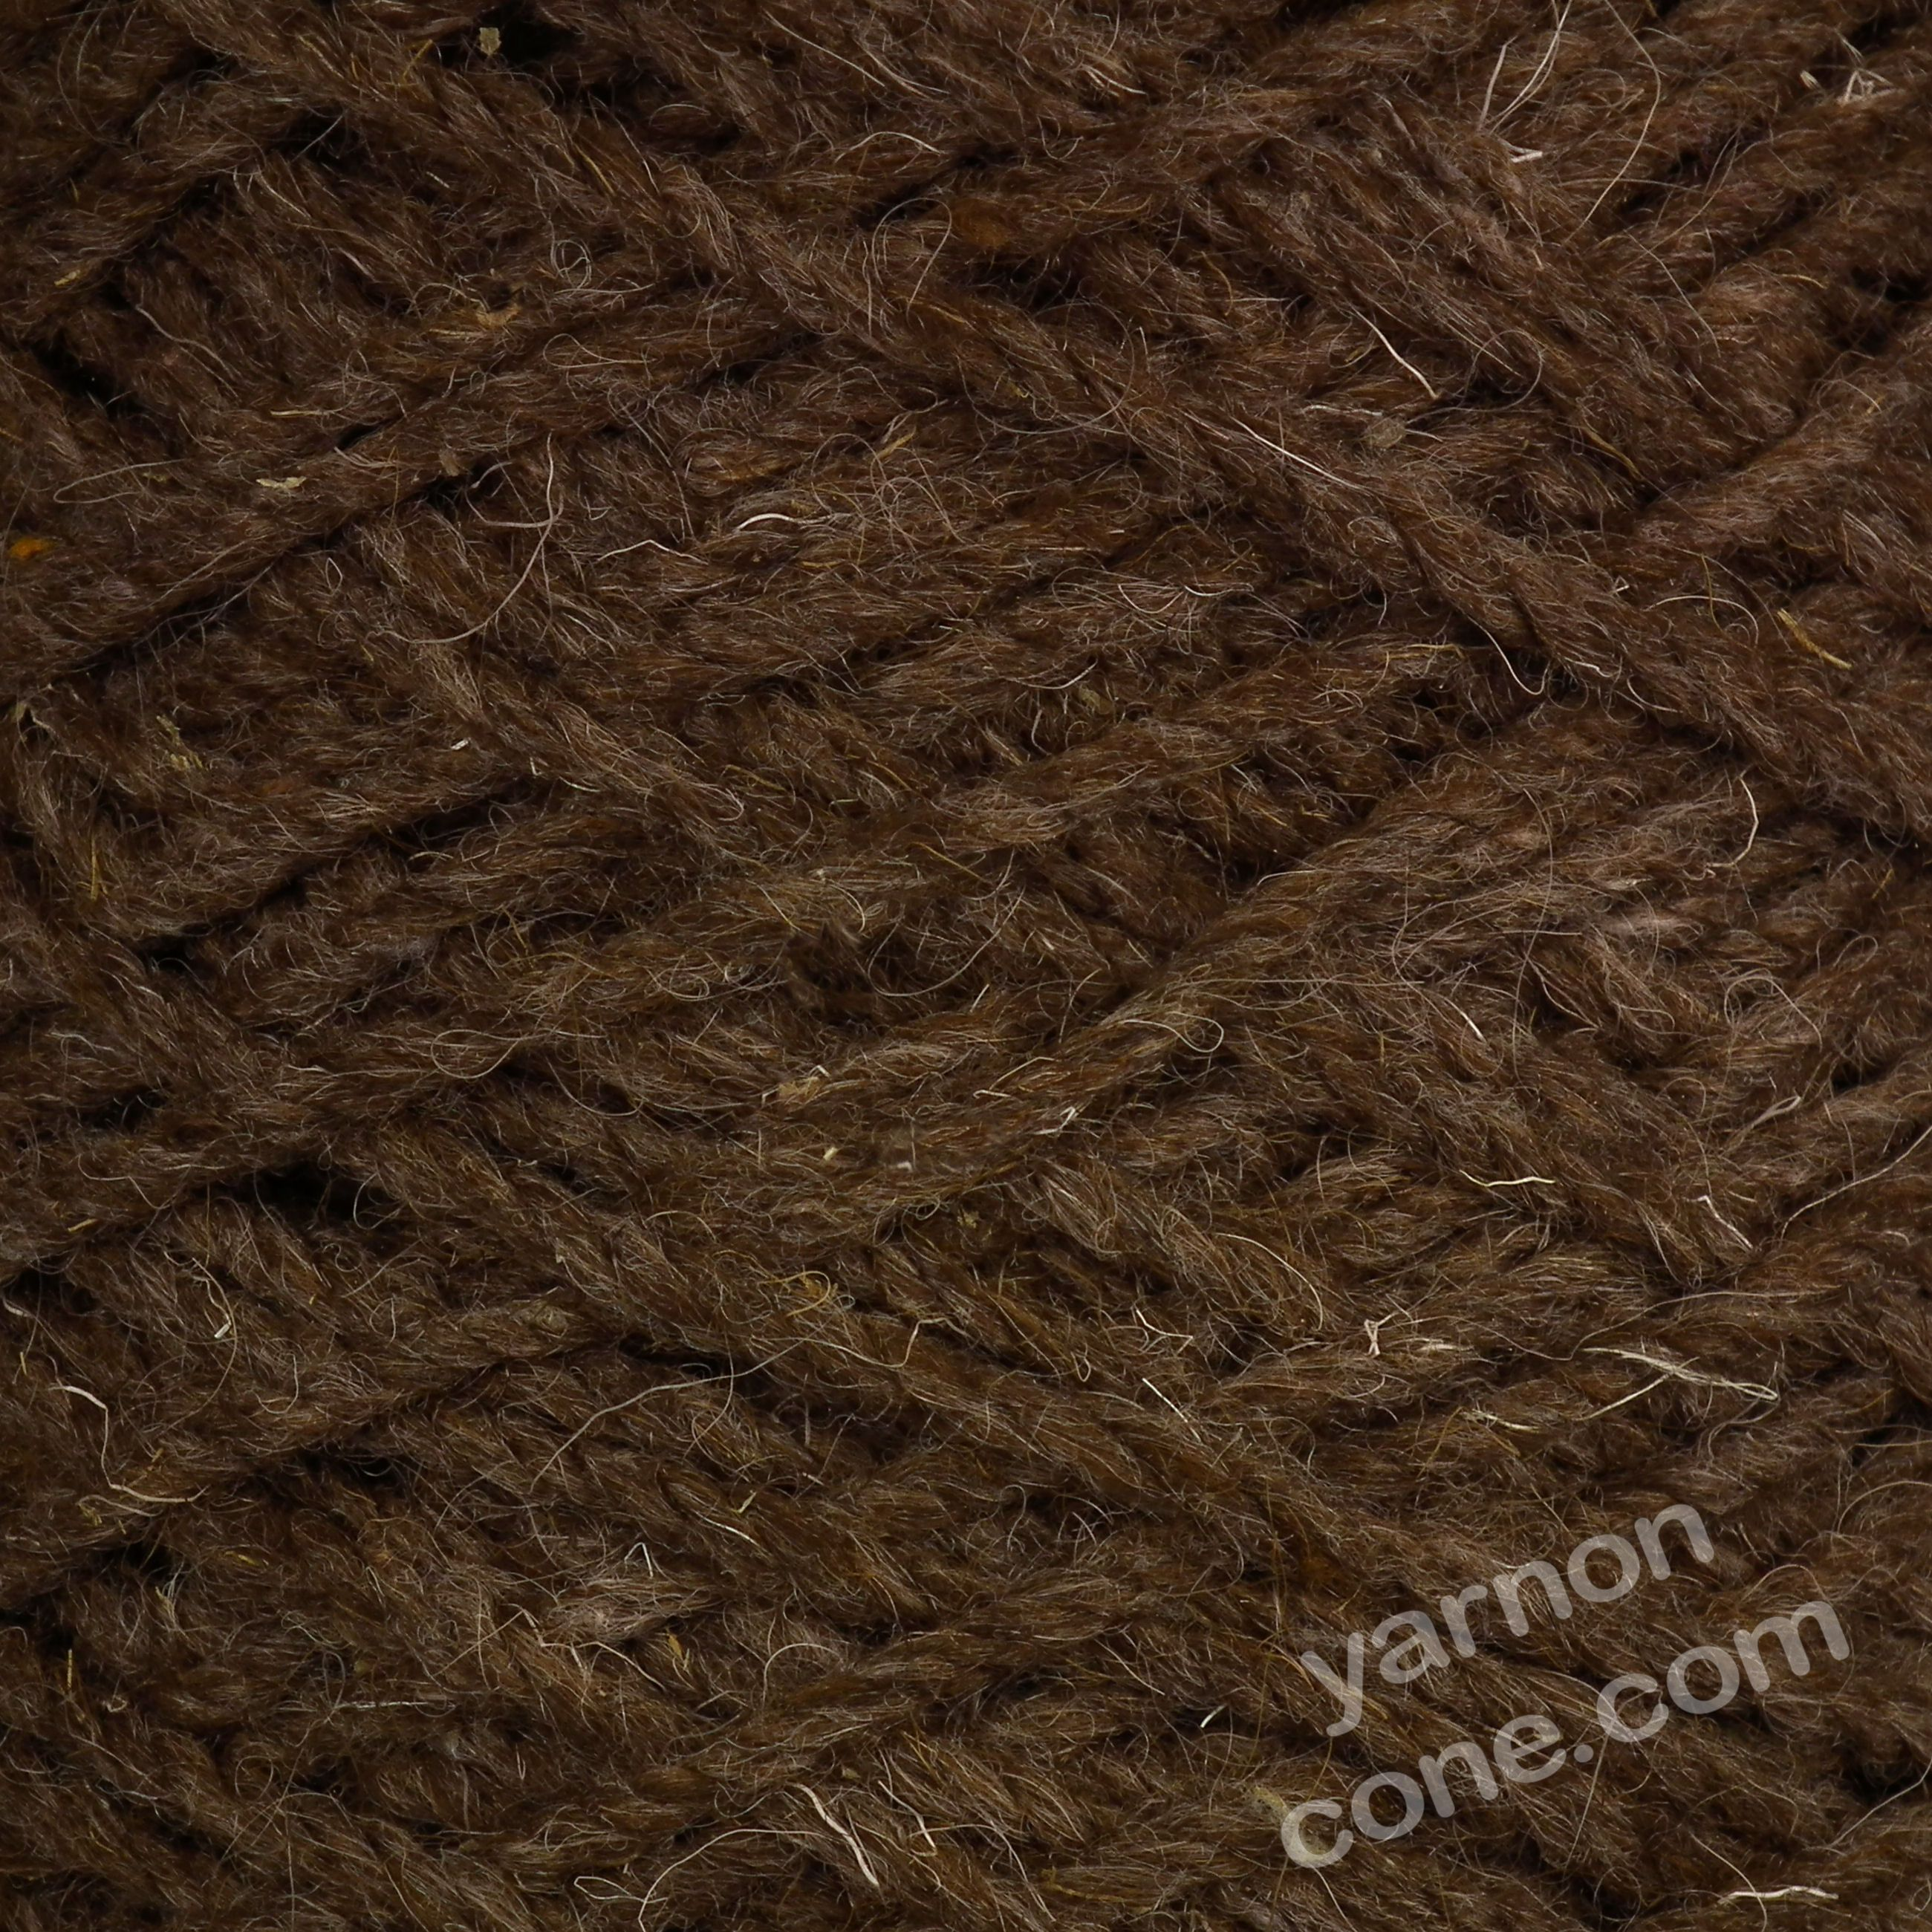 Super Chunky Berber Rug Wool Chocolate Yarn On Cone